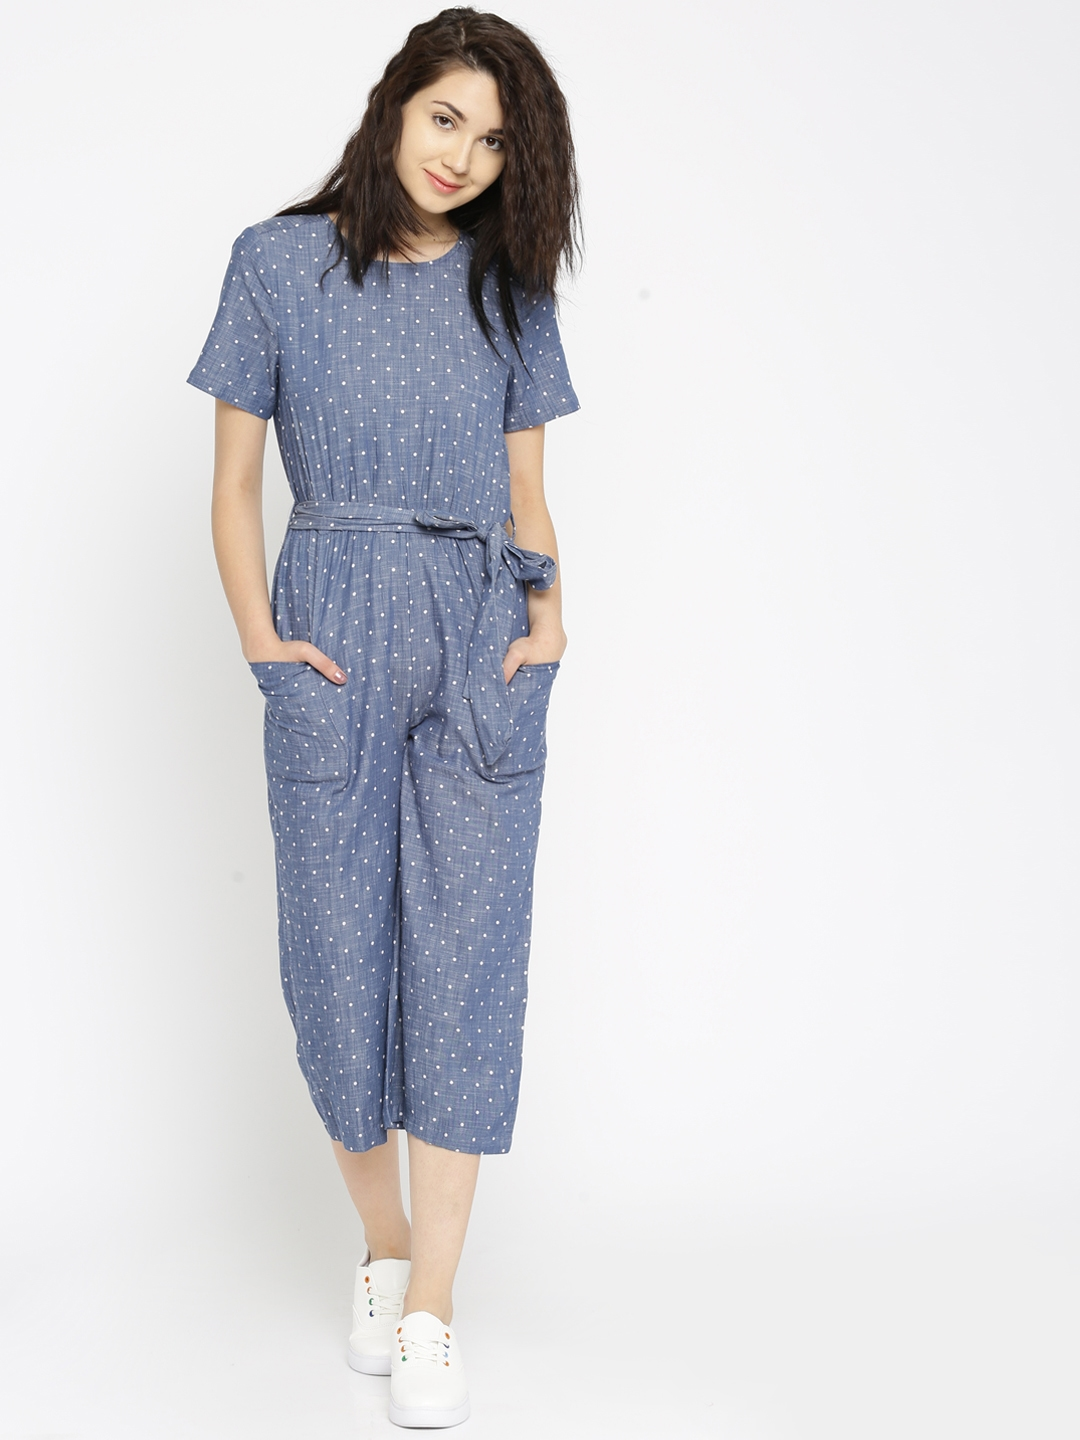 buy vero moda blue chambray polka dot print jumpsuit jumpsuit for women myntra. Black Bedroom Furniture Sets. Home Design Ideas